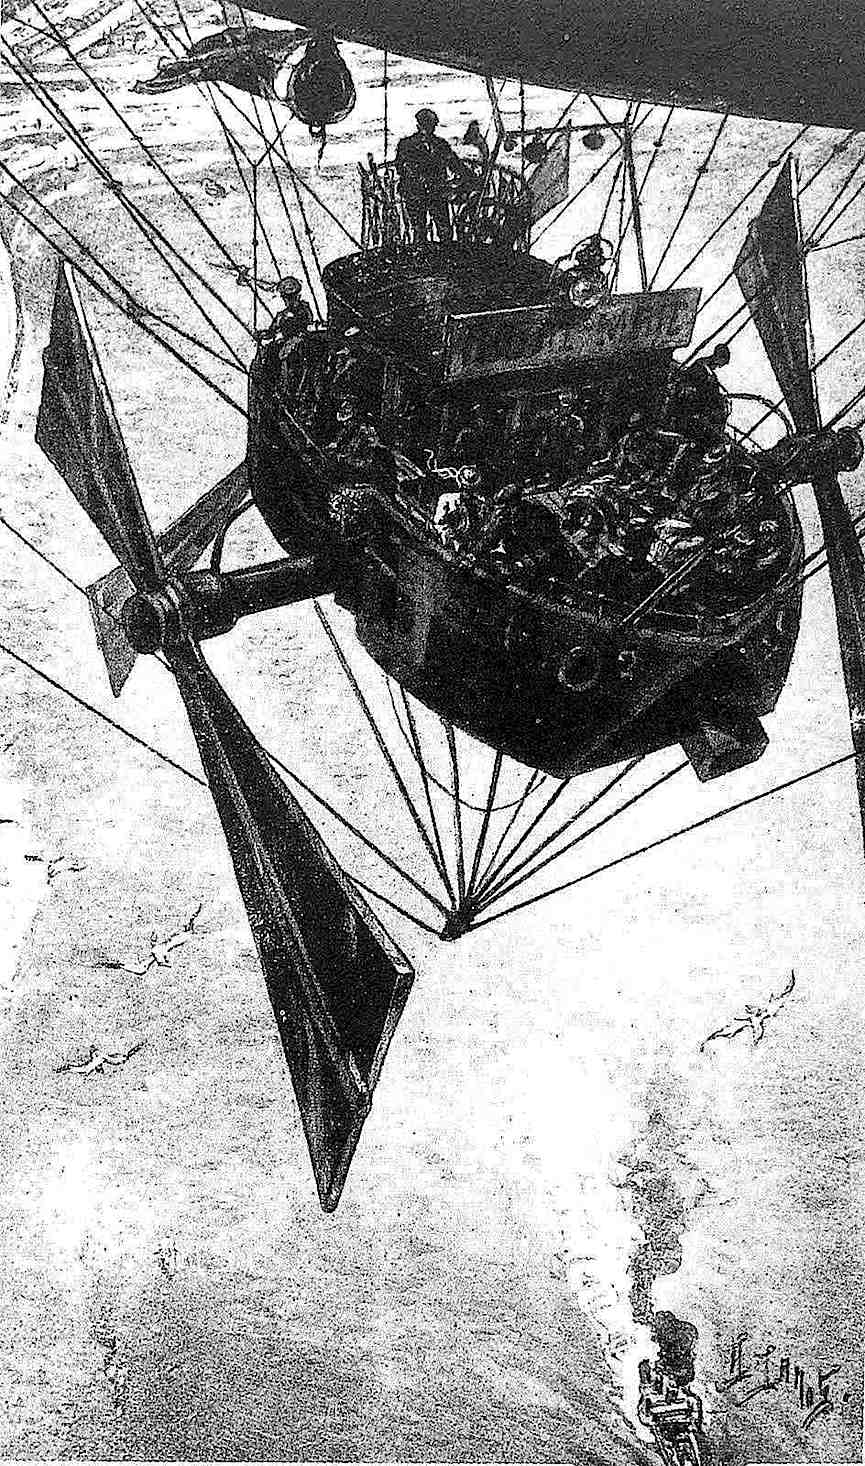 Albert Robida 1883, a flying machine